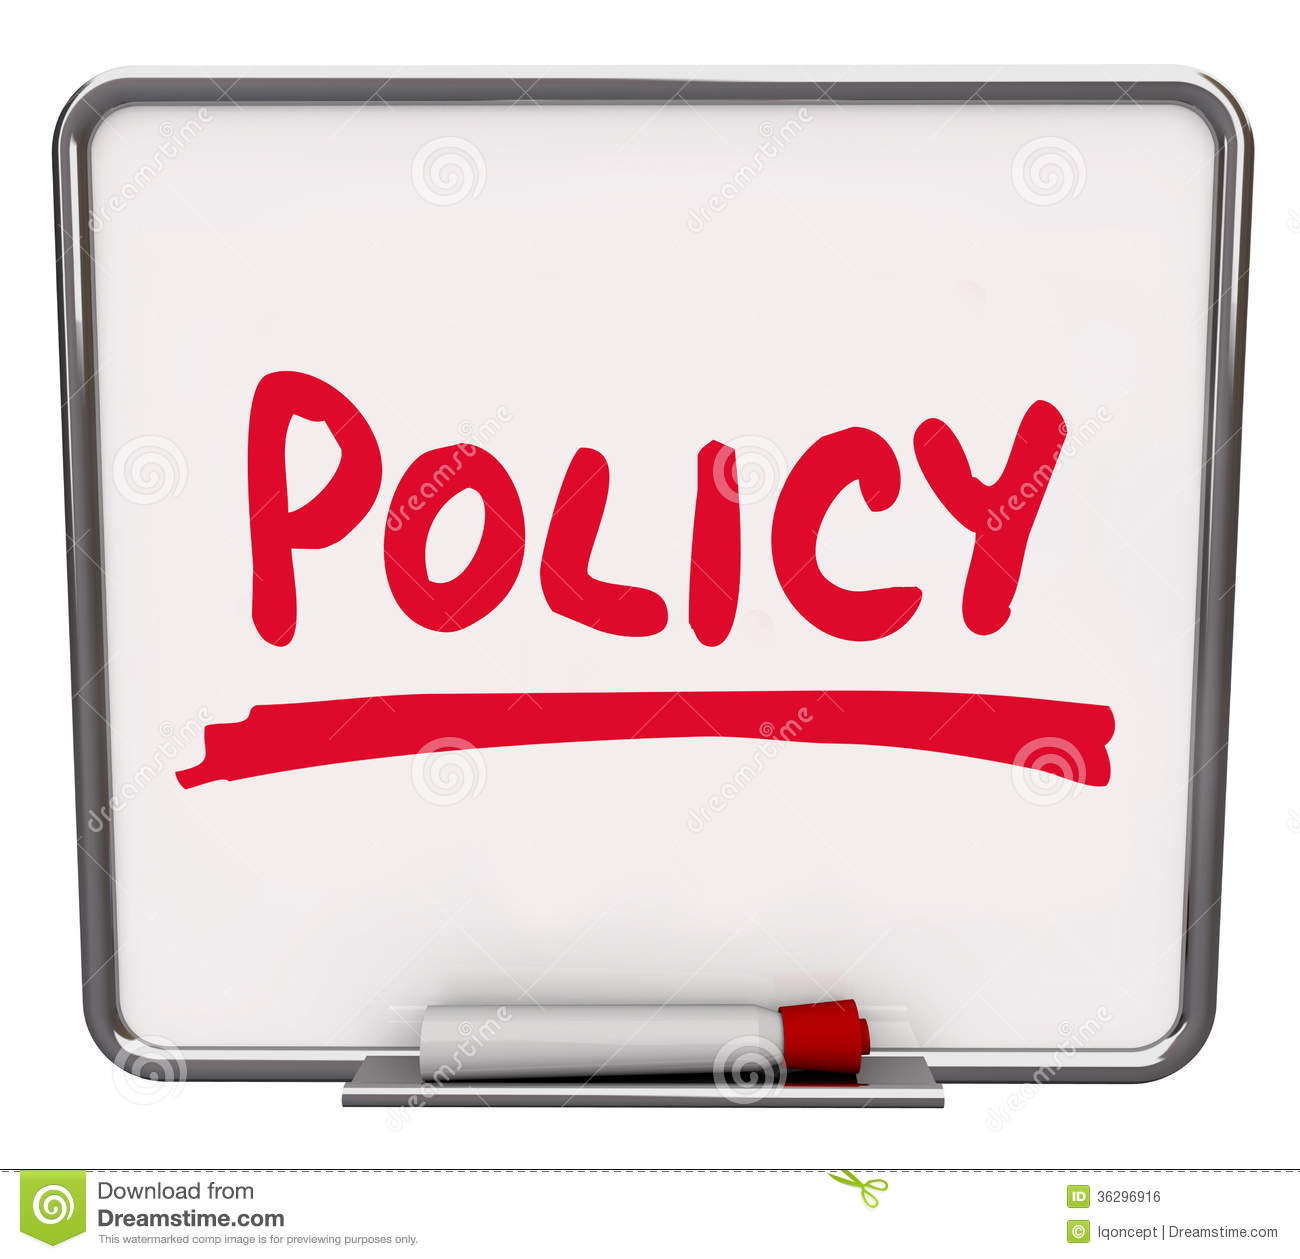 policy clipart clipart kid